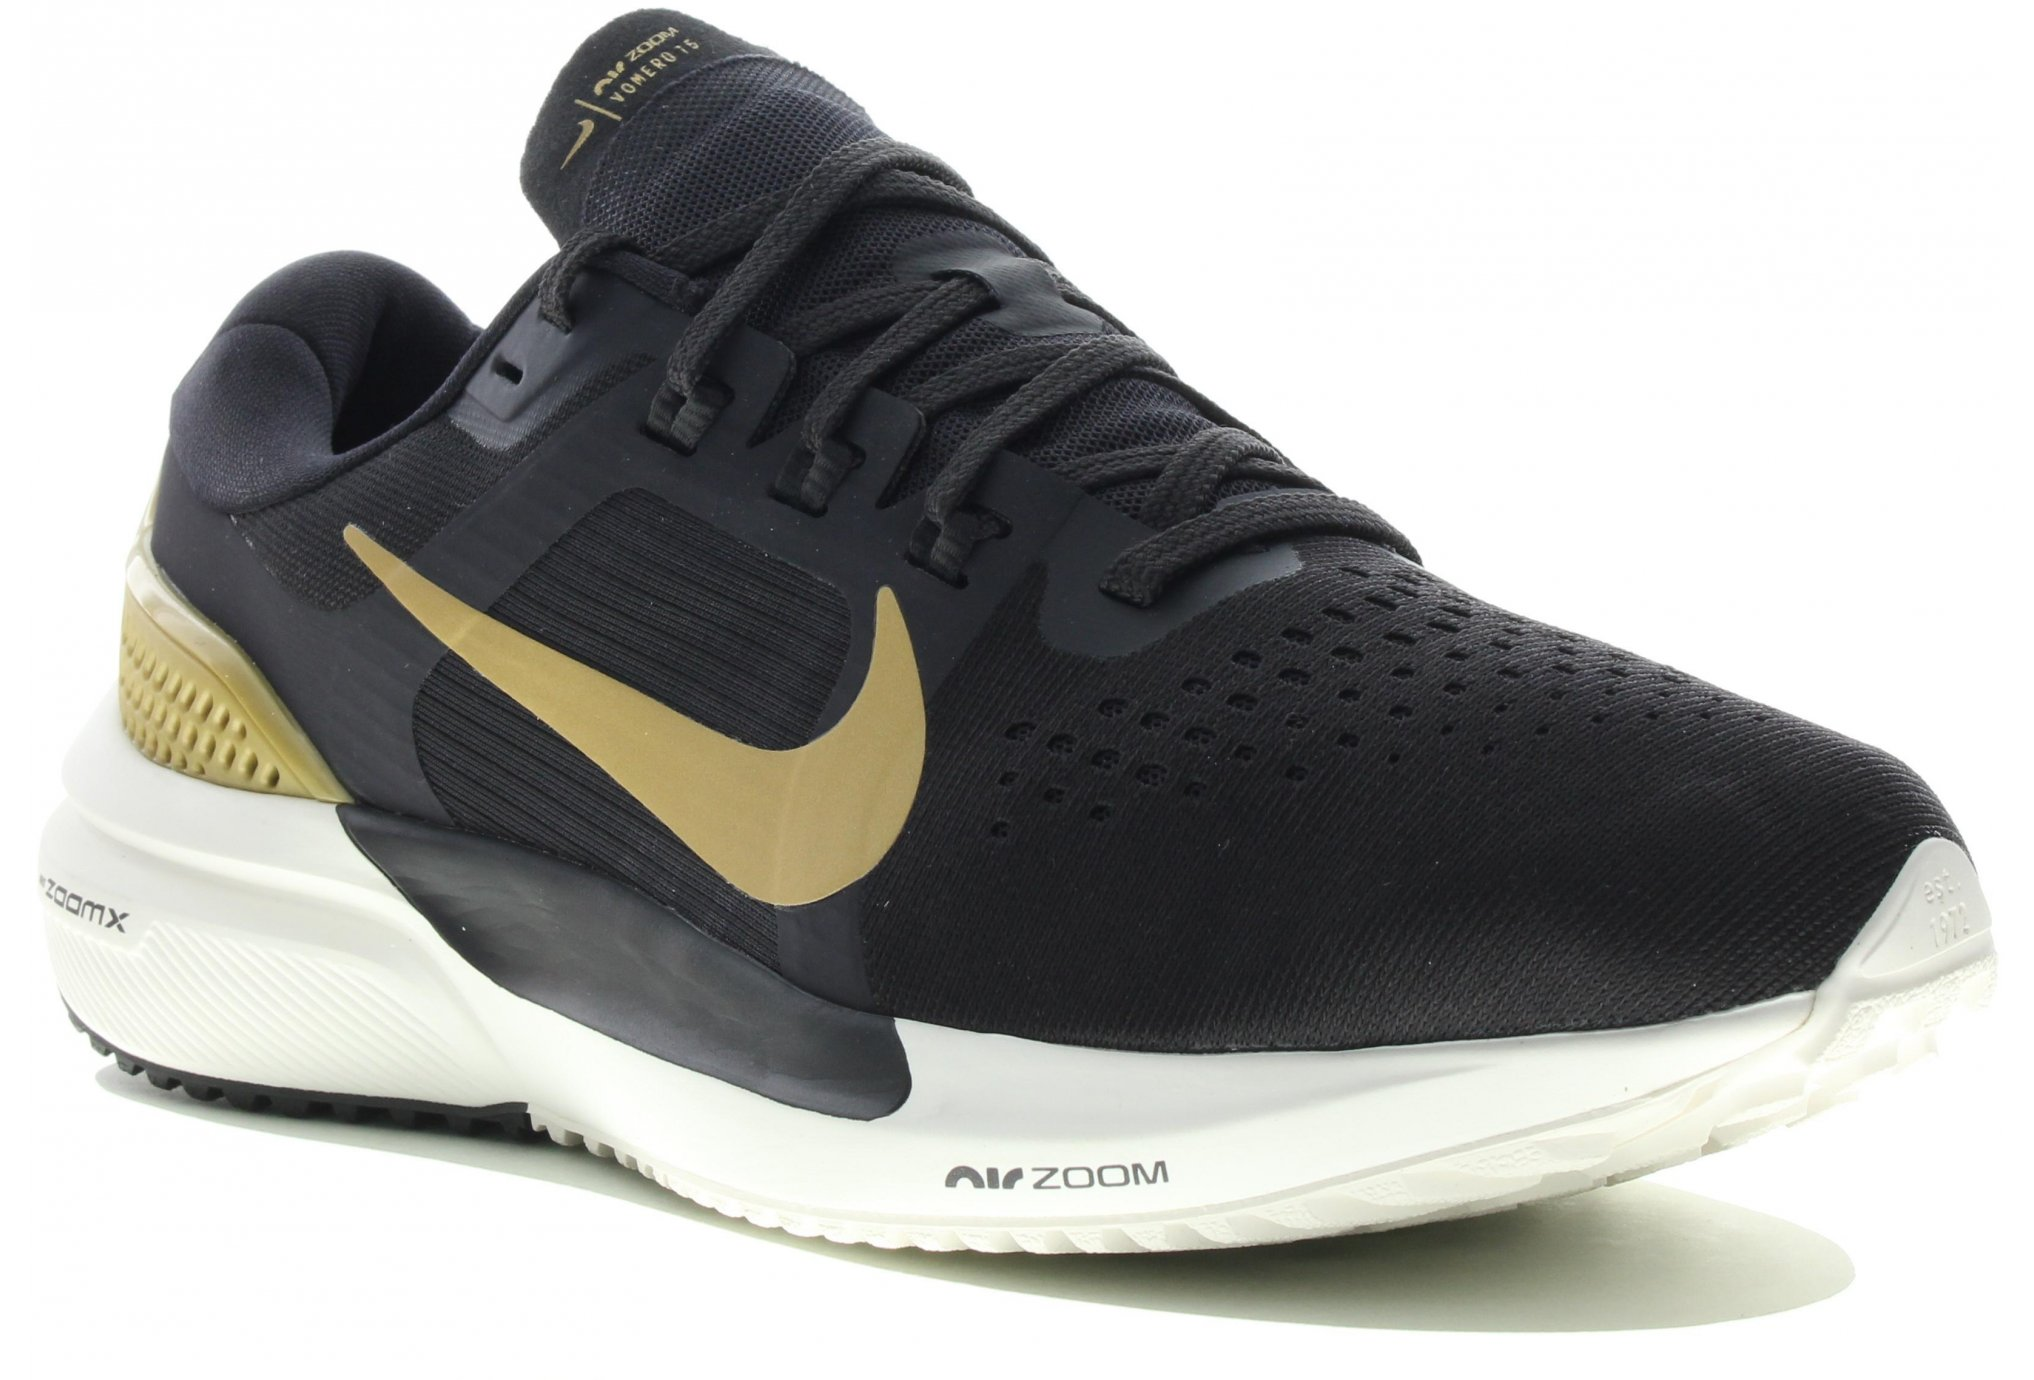 Nike Air Zoom Vomero 15 W Chaussures running femme